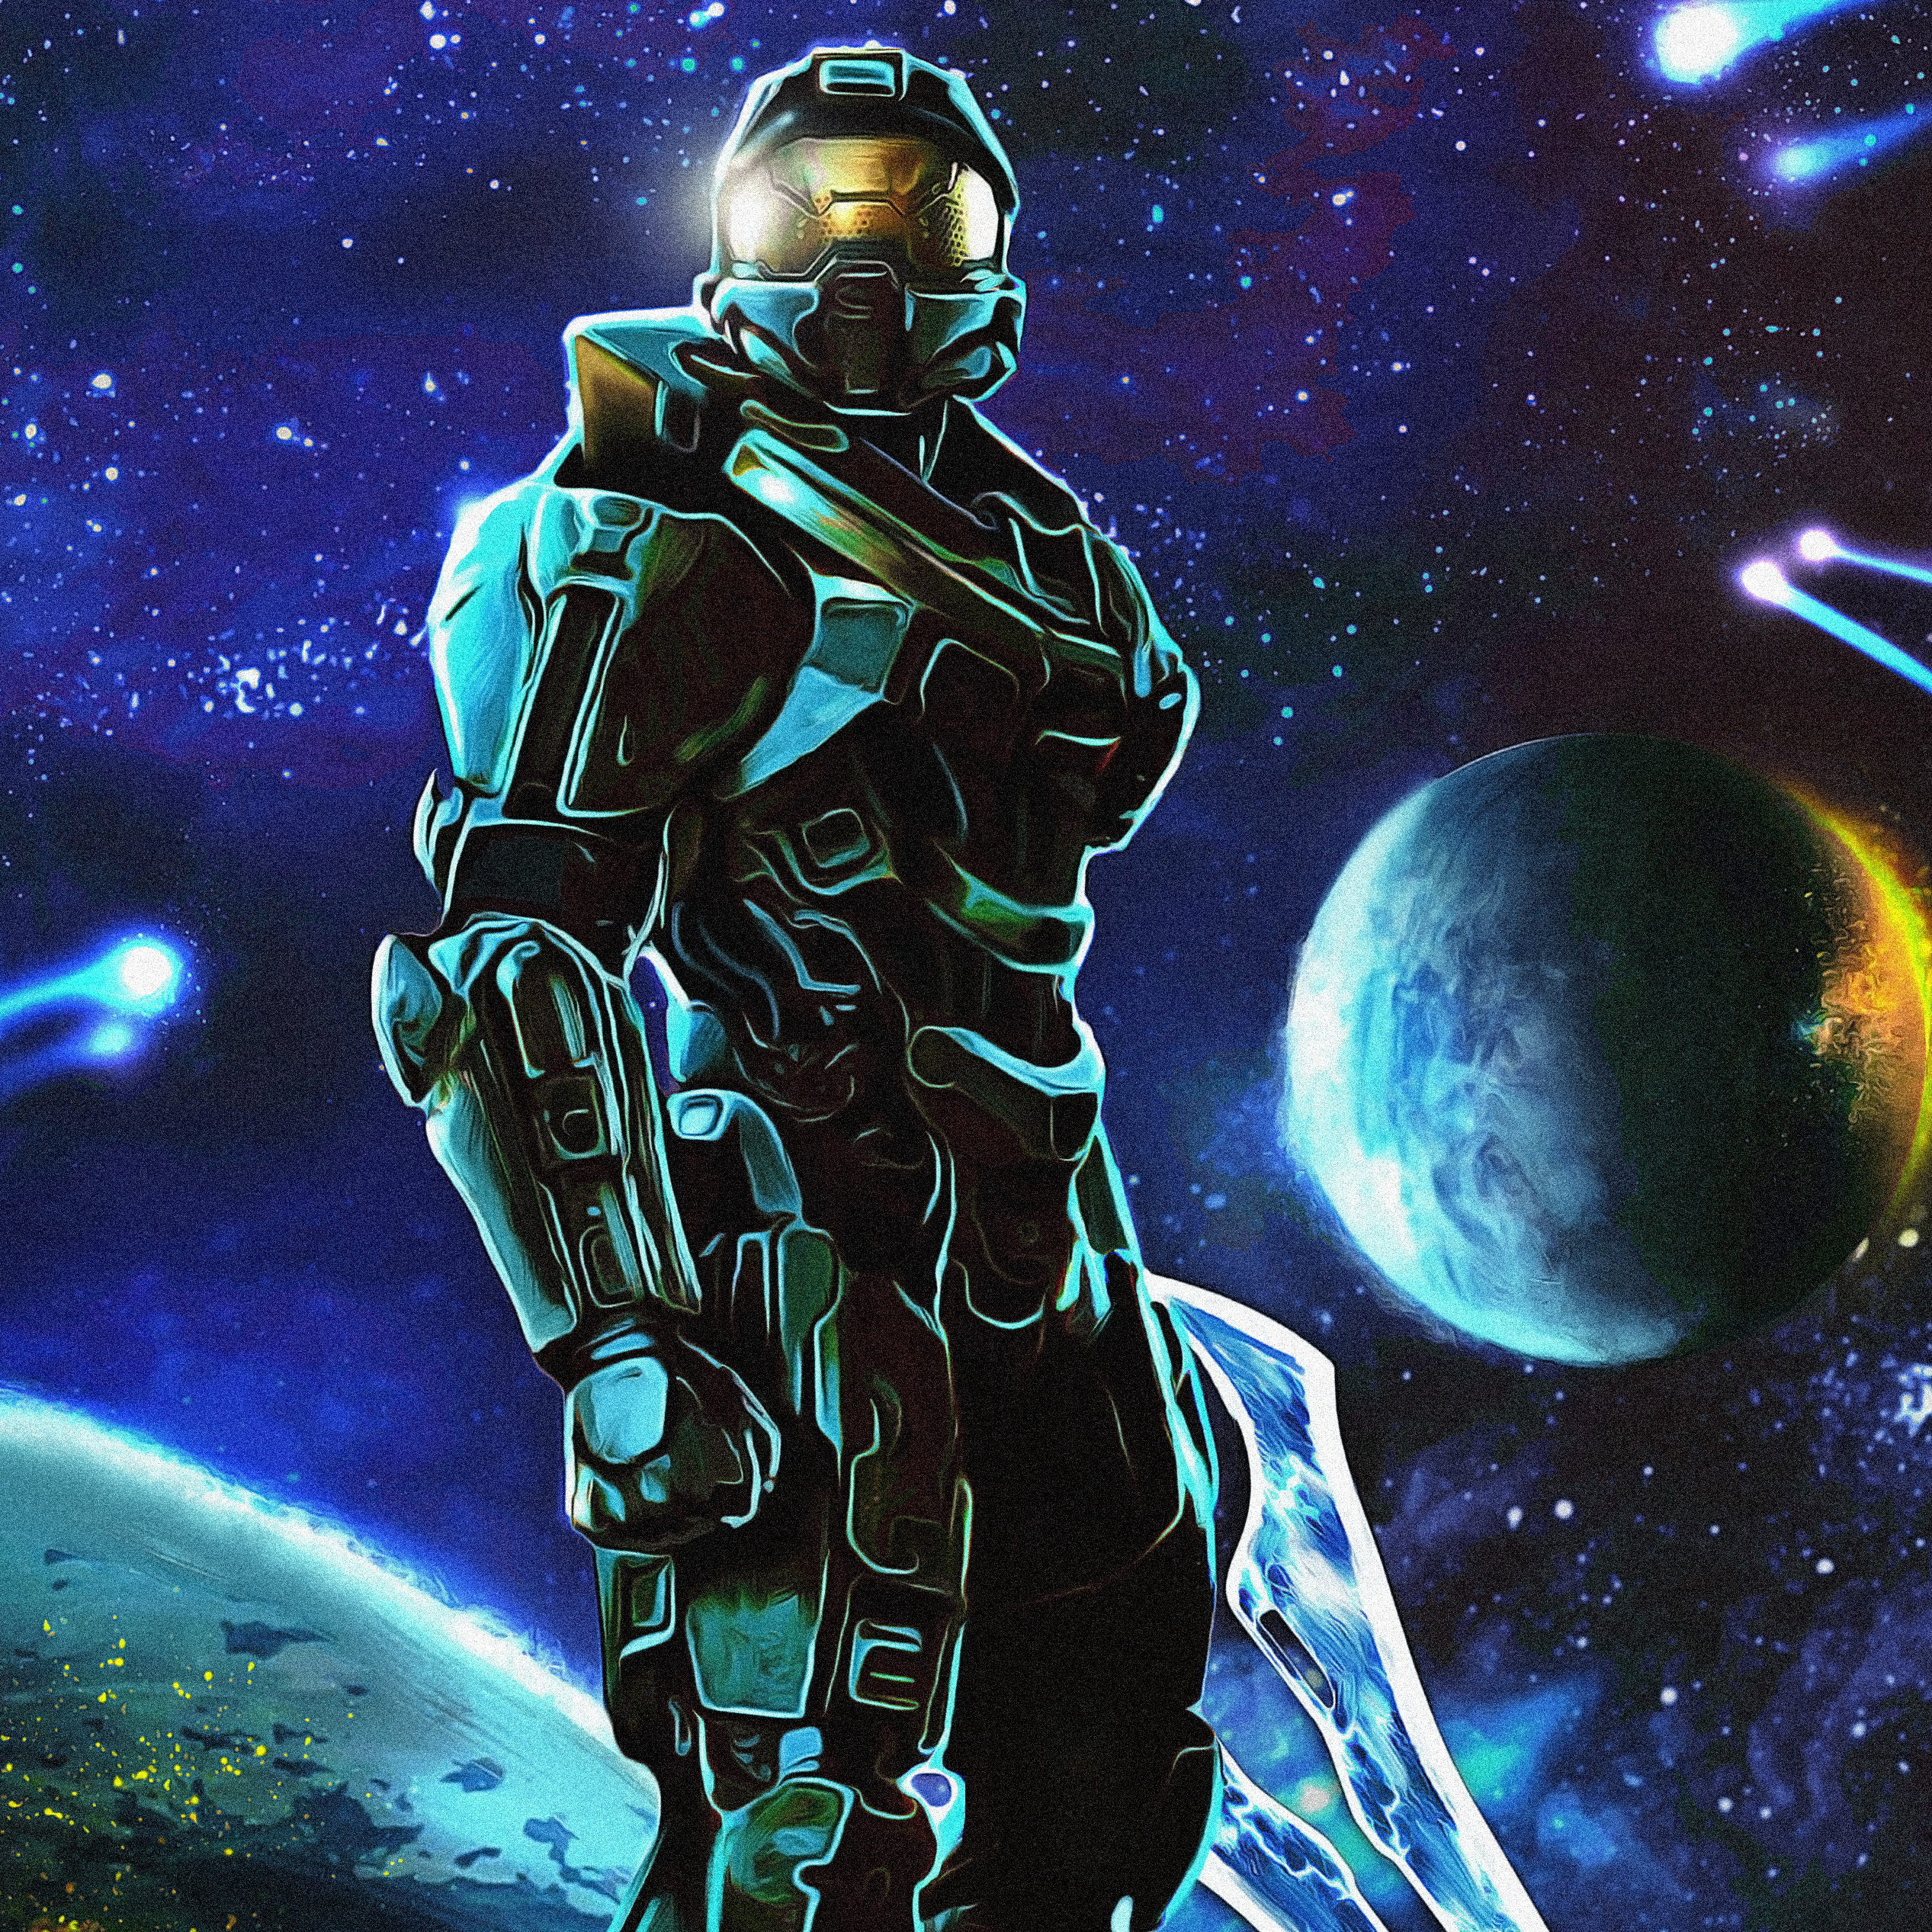 Pictures Halo Halo 5 Guardians Warriors Master Chief 2534x2534